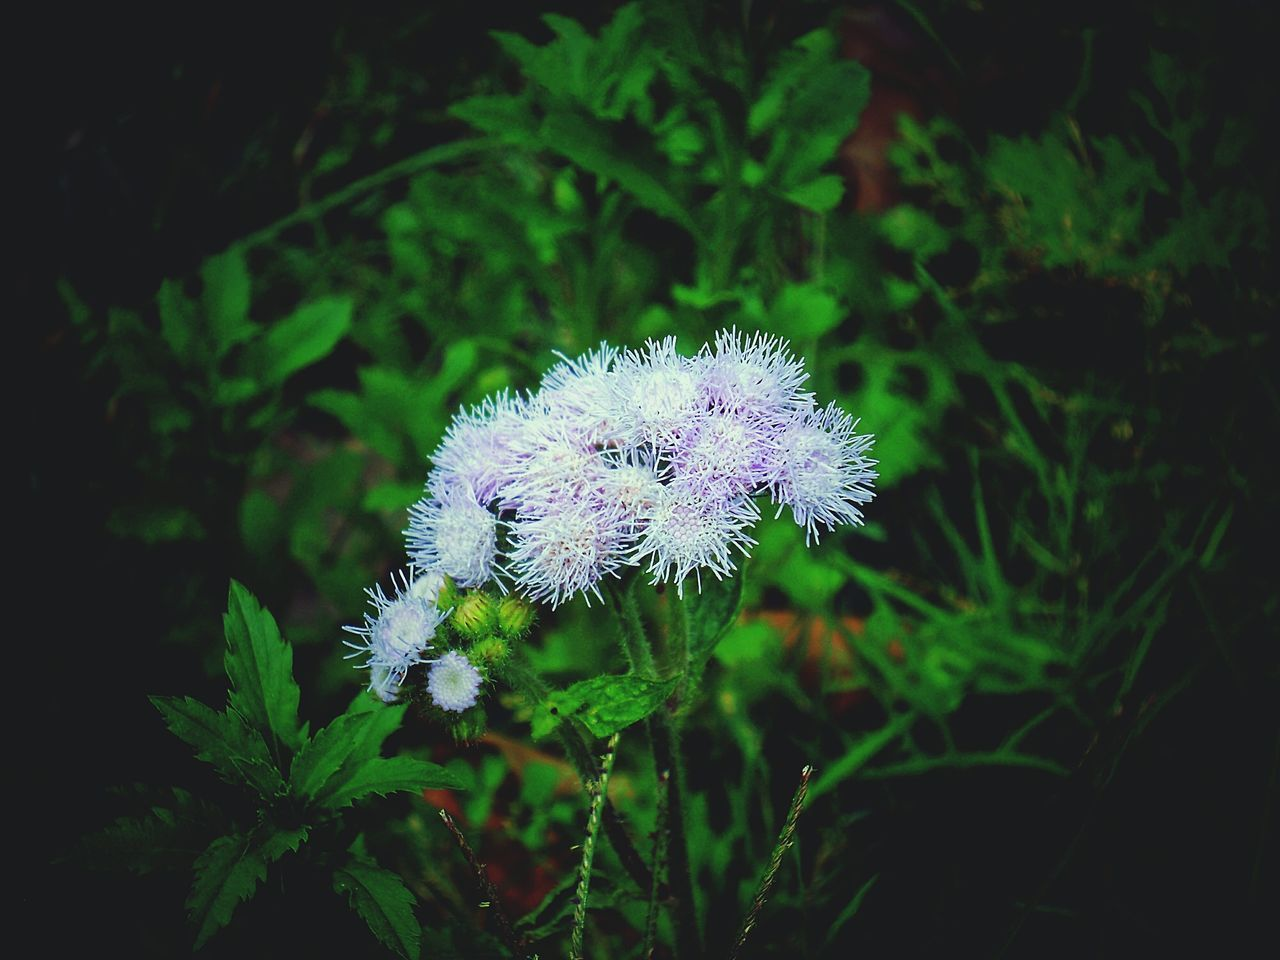 flower, nature, growth, fragility, plant, beauty in nature, flower head, no people, freshness, blooming, outdoors, close-up, day